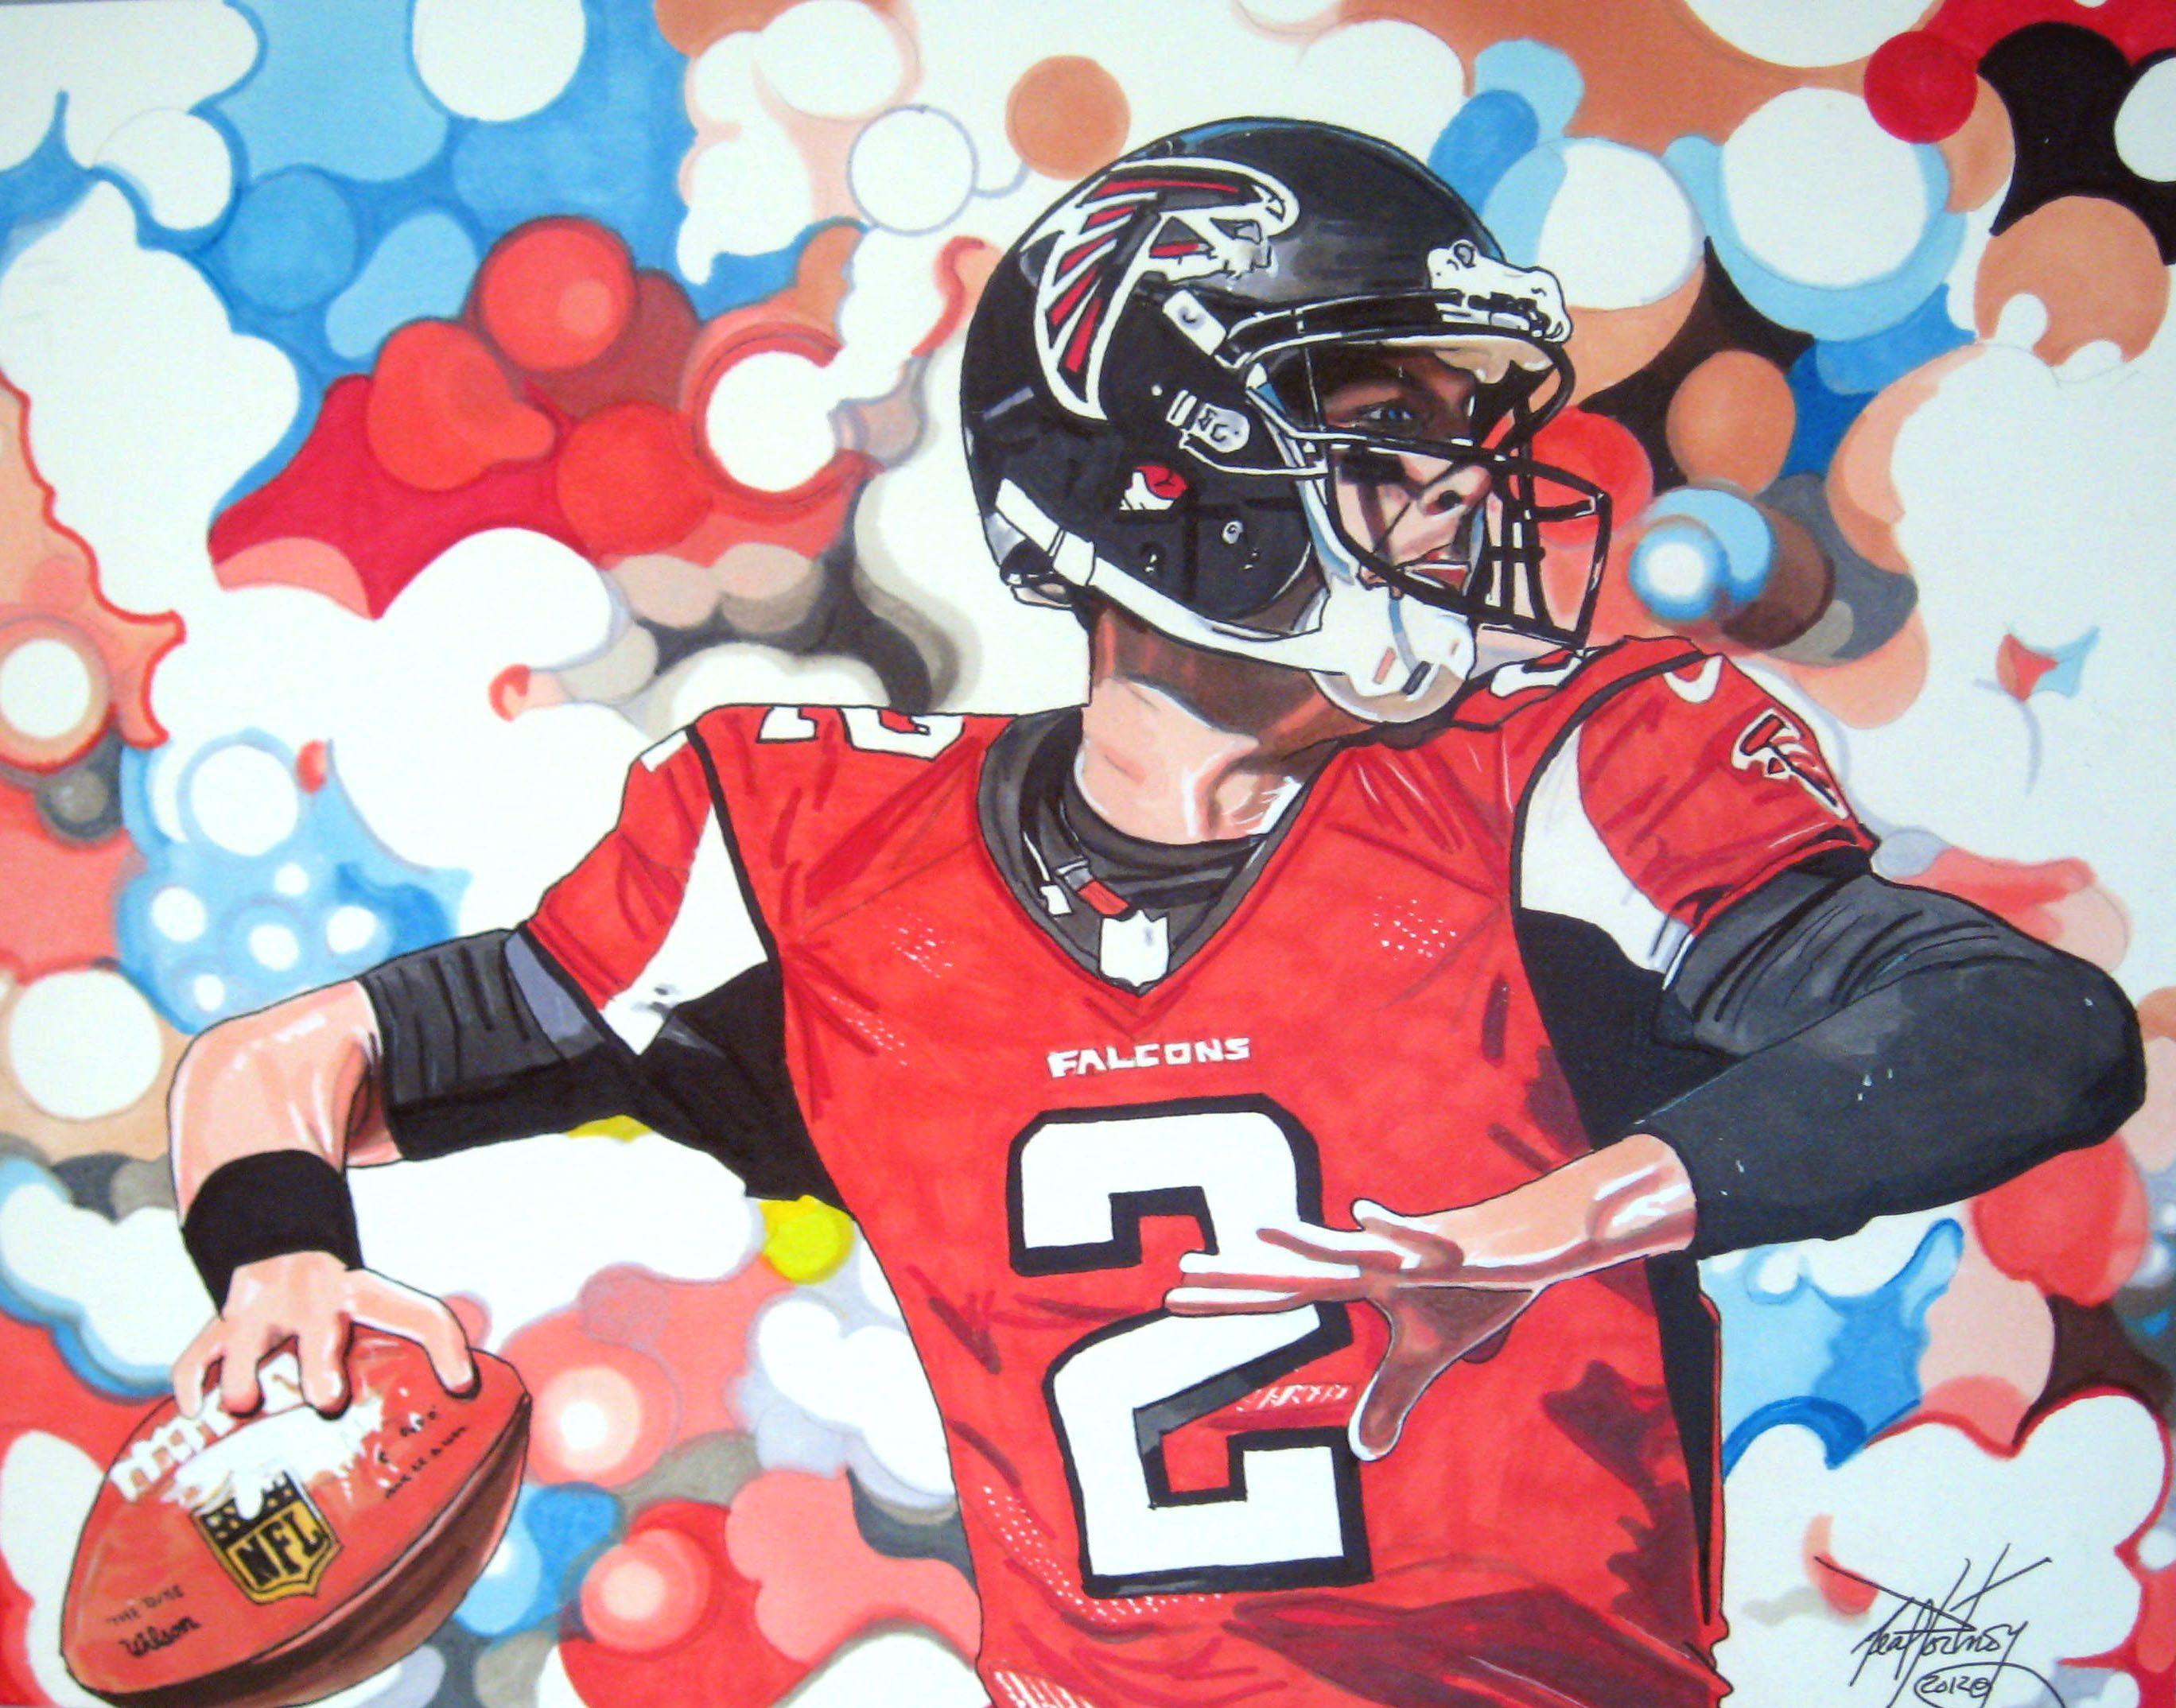 11x14 Marker Illustration I Completed Of Atlanta Falcons Qb Matt Ryan Sports Art Football Art Falcons Football